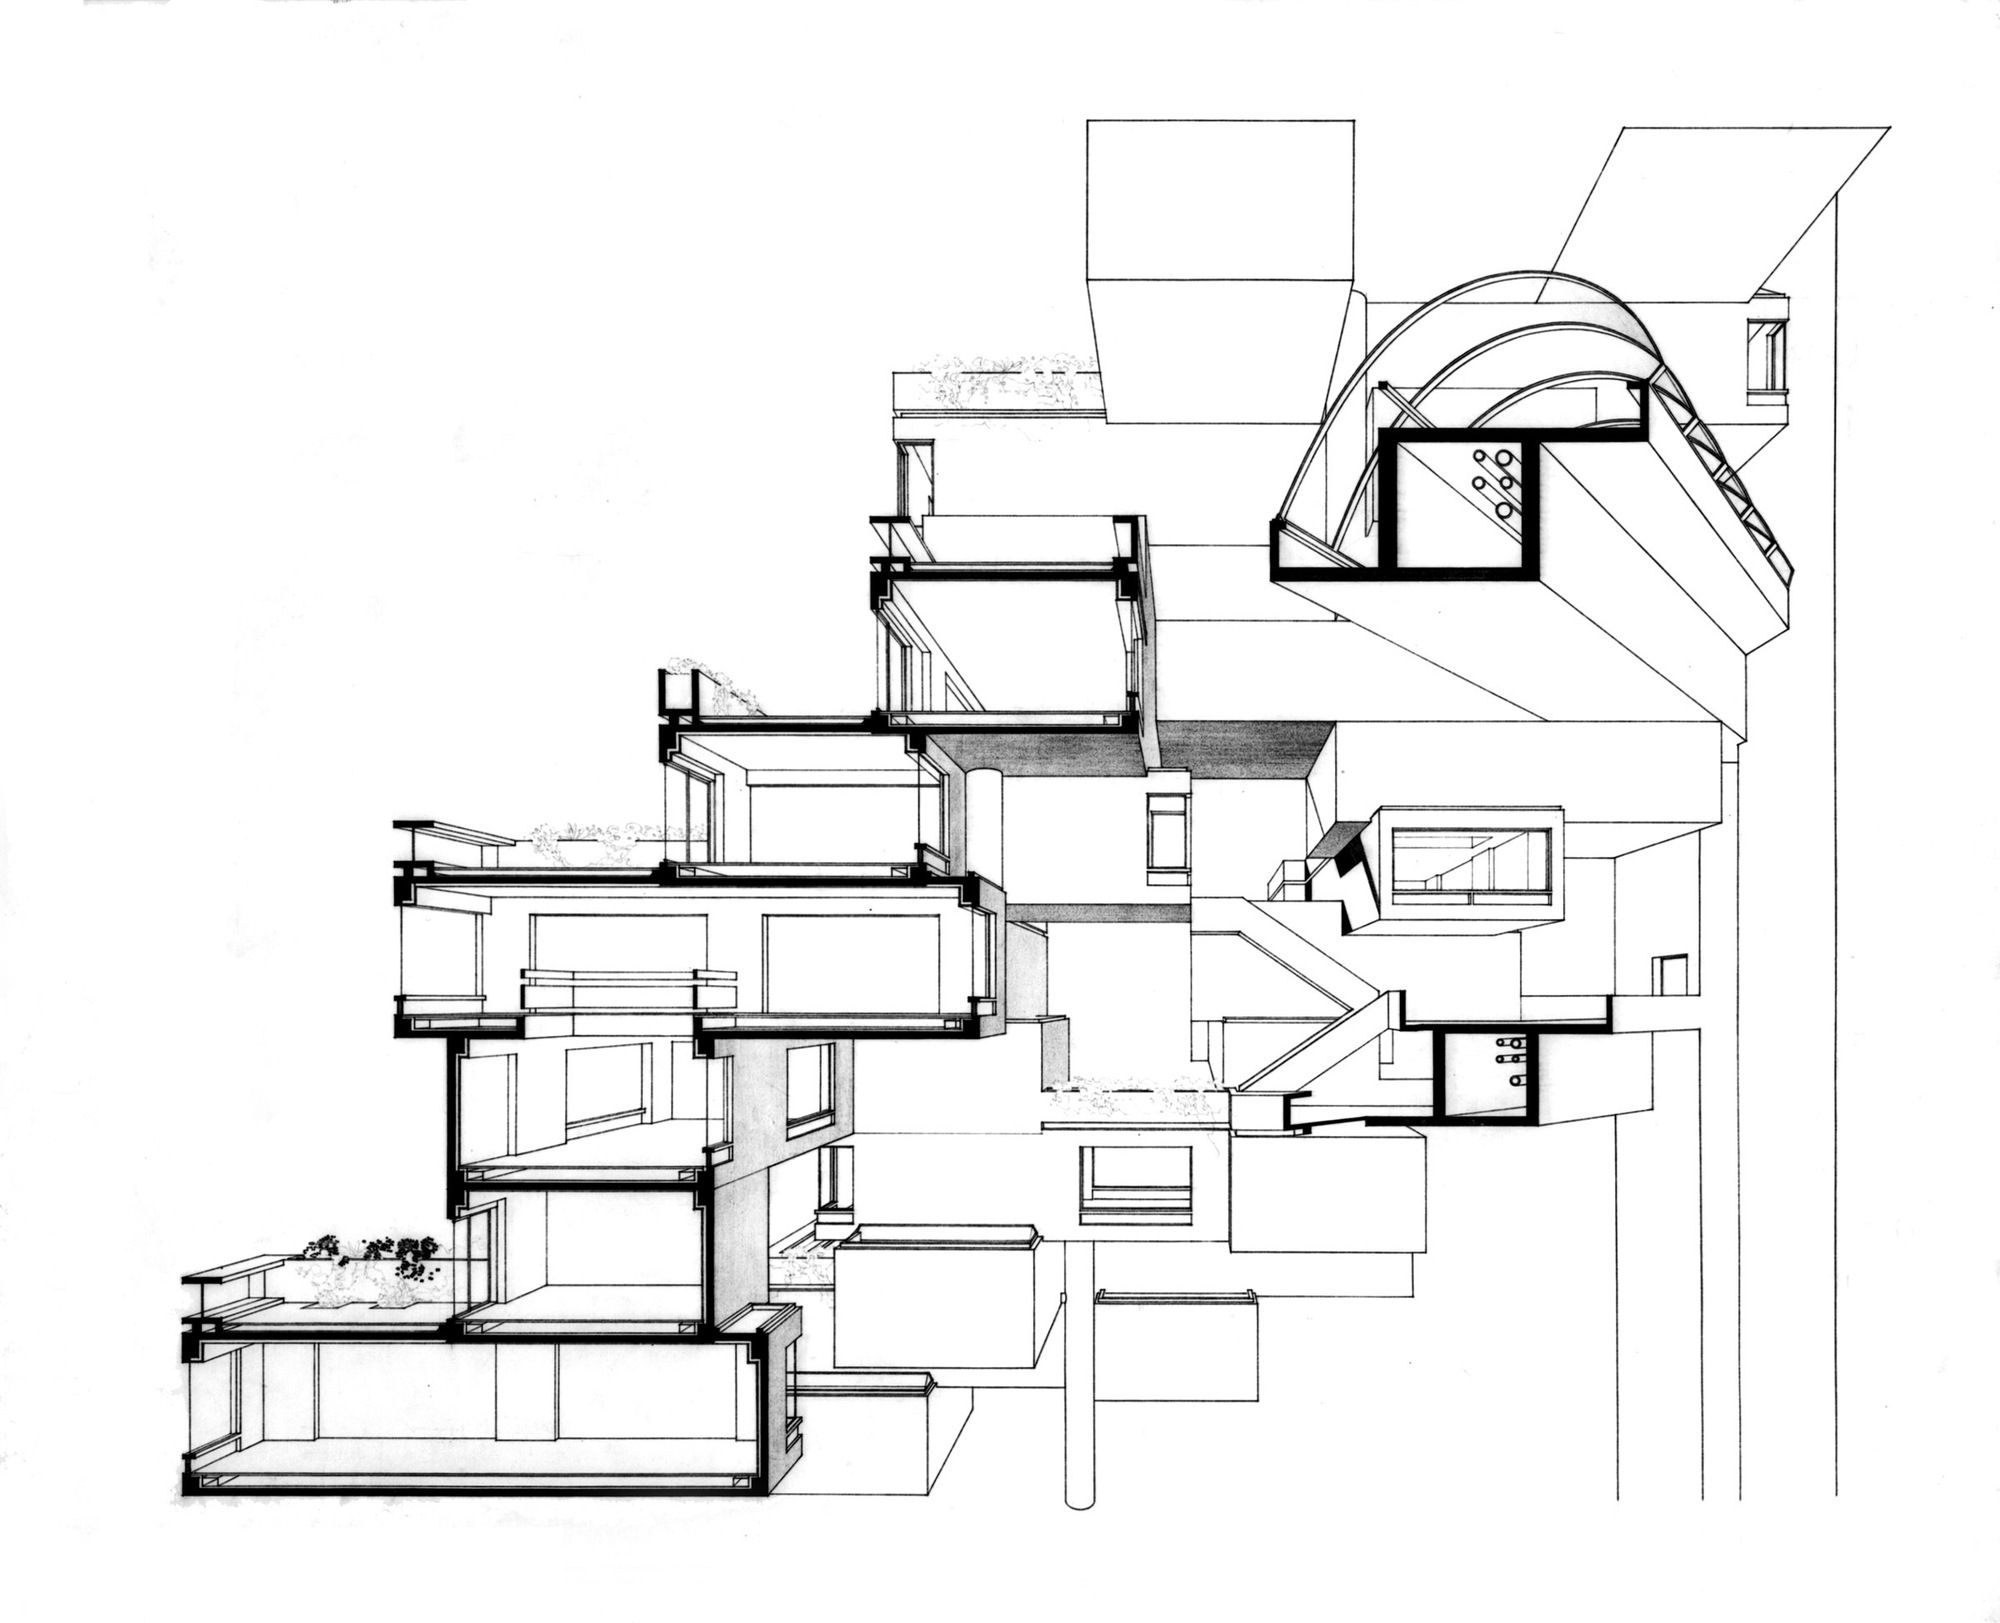 Pin On Architectural Sketches